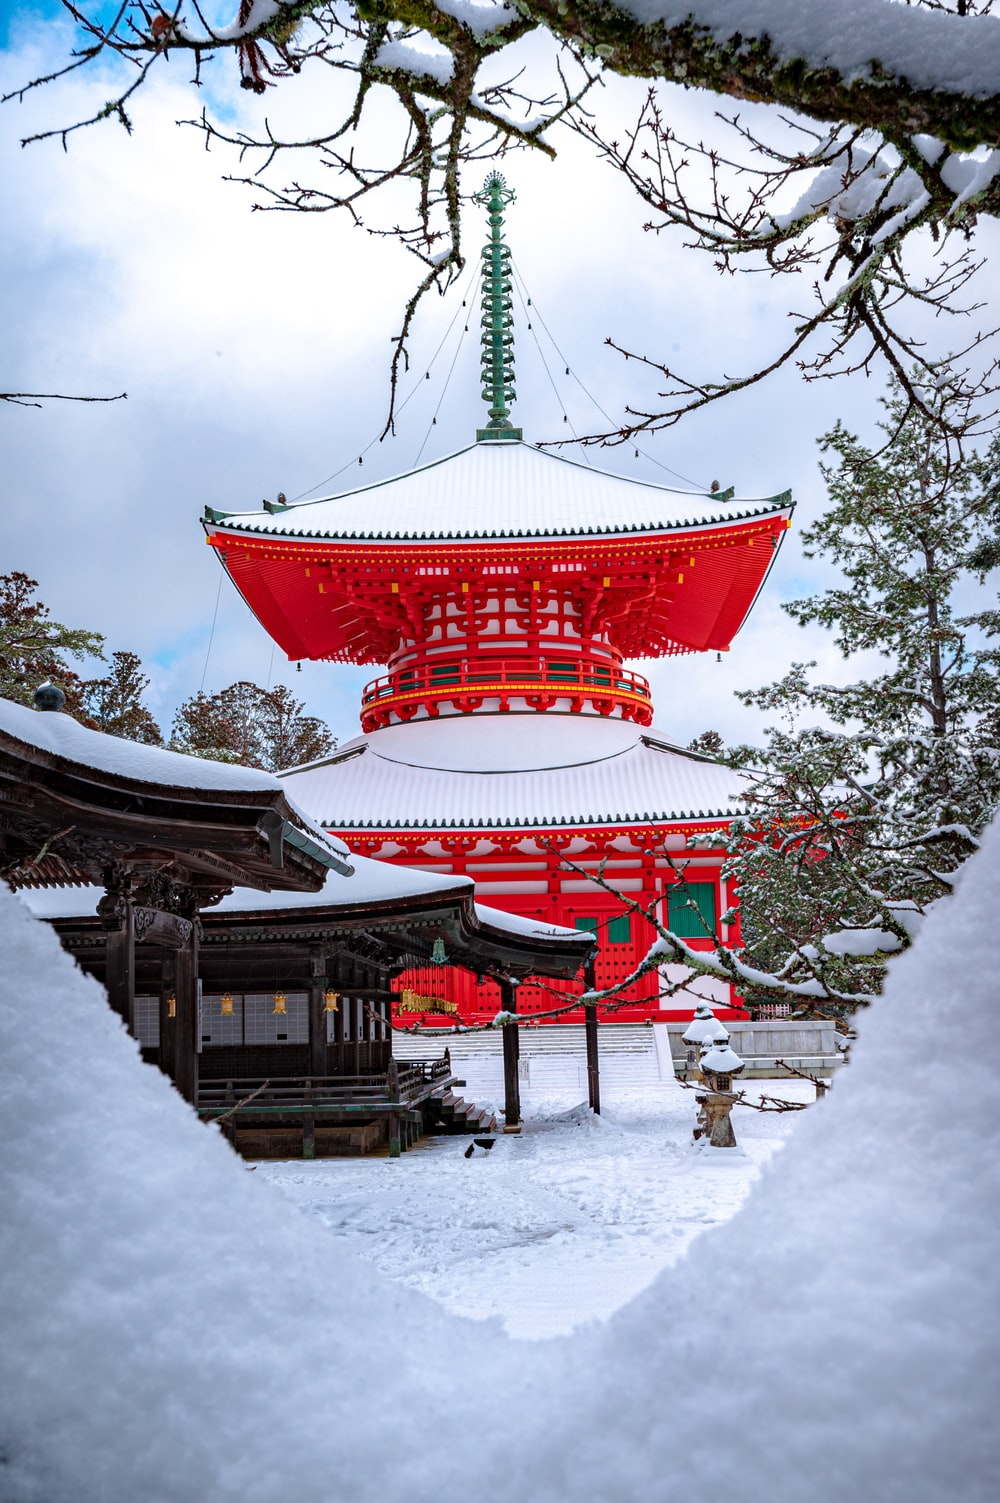 red and white temple surrounded by trees covered with snow